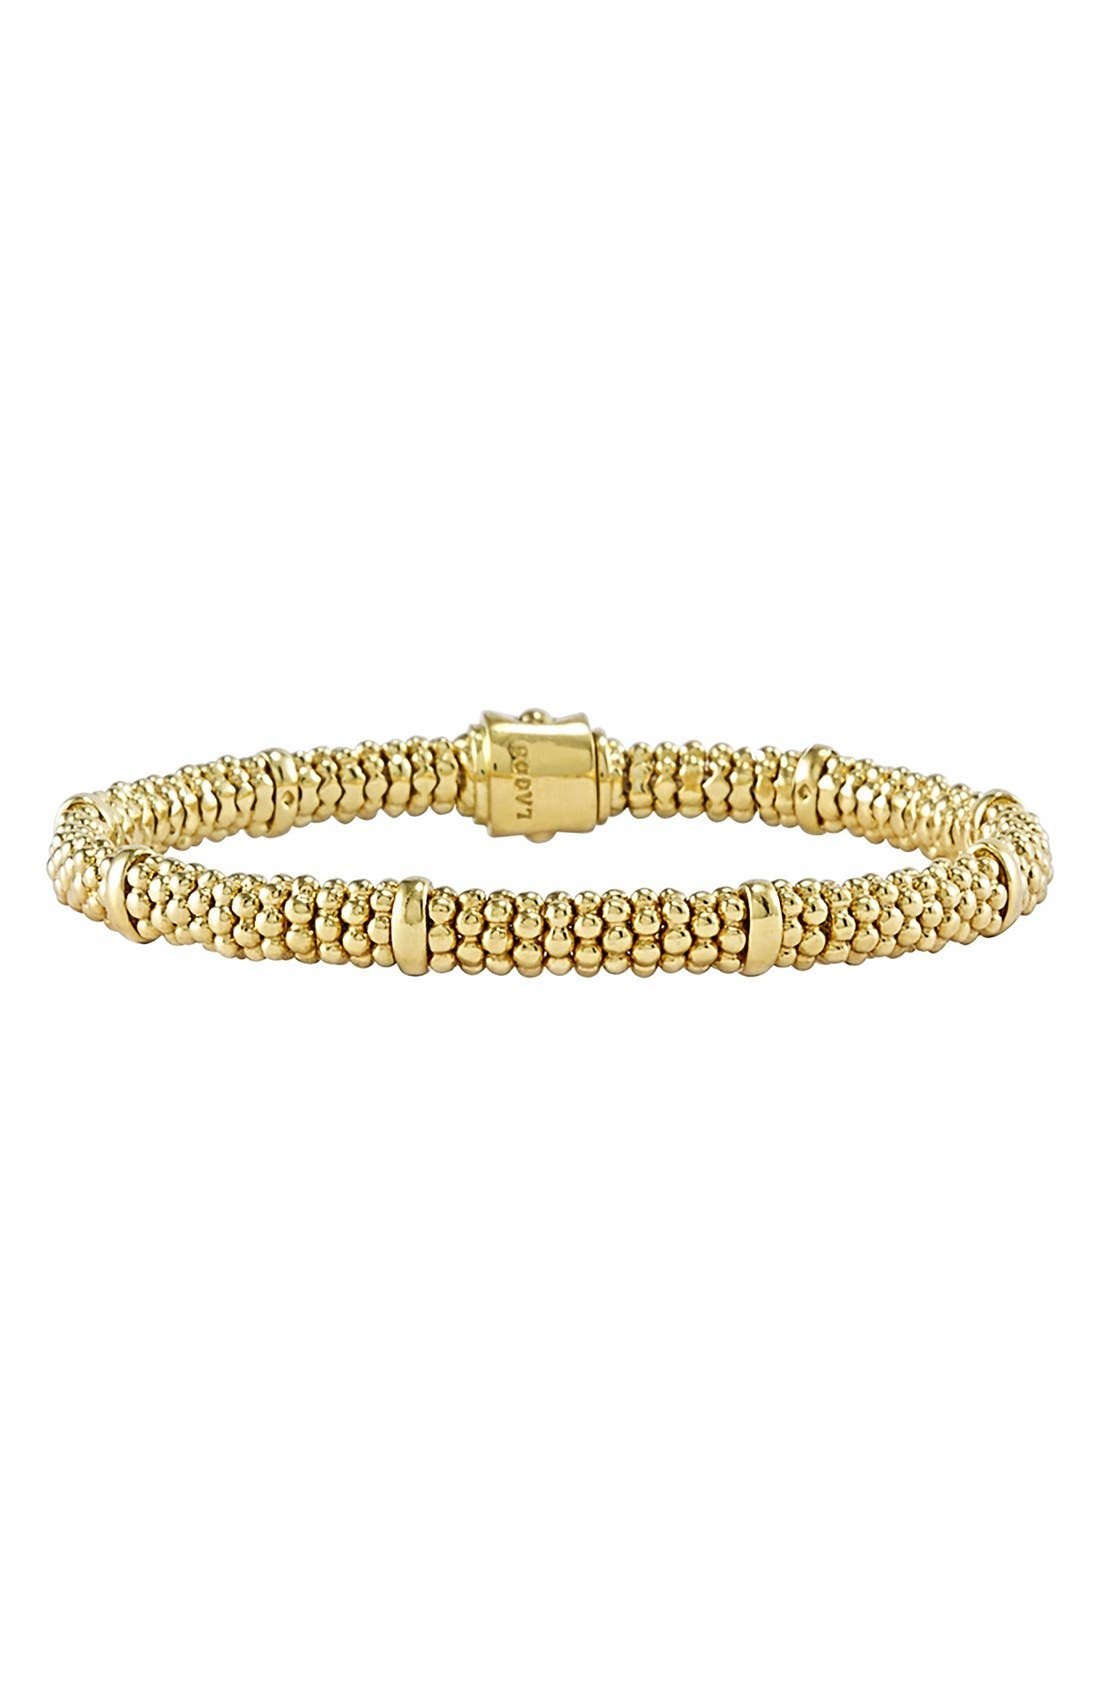 Caviar Rope Bracelet,                             Main thumbnail 1, color,                             Gold